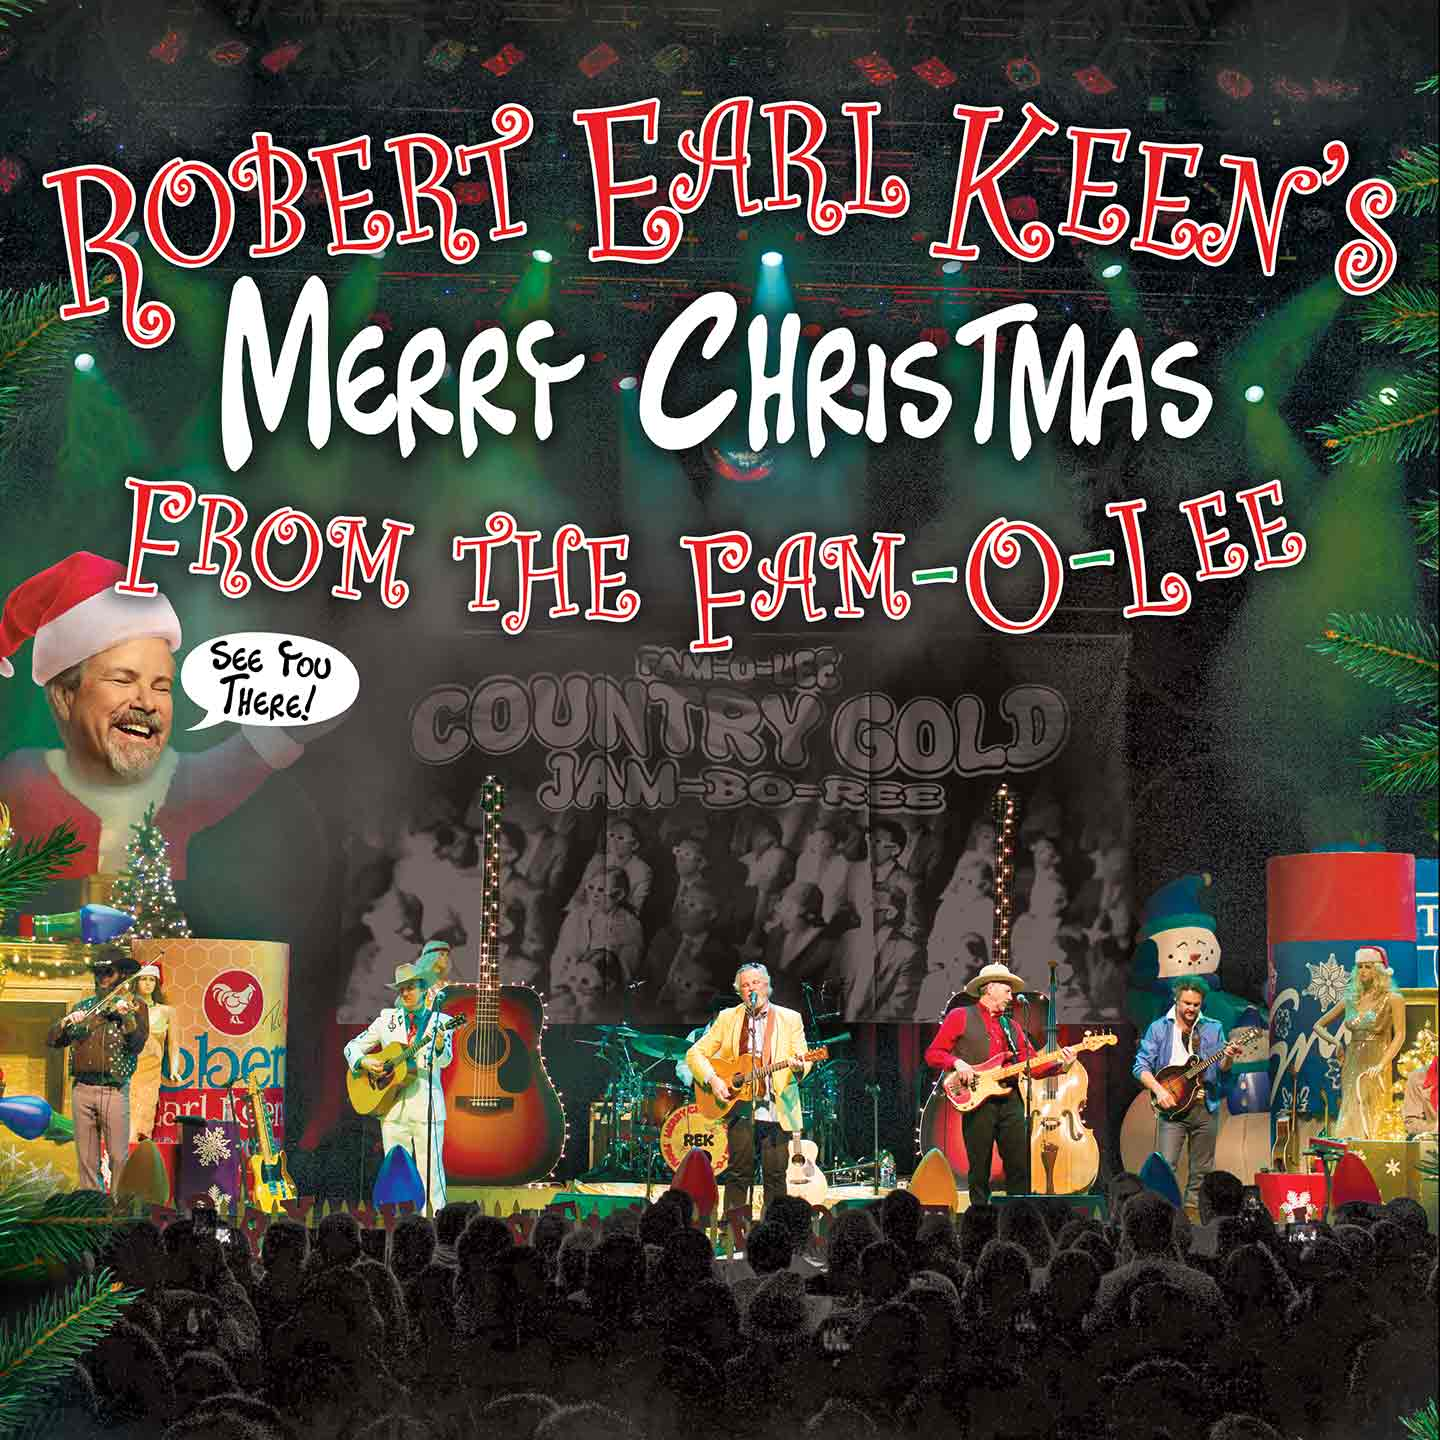 Robert Earl Keen Merry Christmas From The Family.Robert Earl Keen S Merry Christmas From The Fam O Lee Show